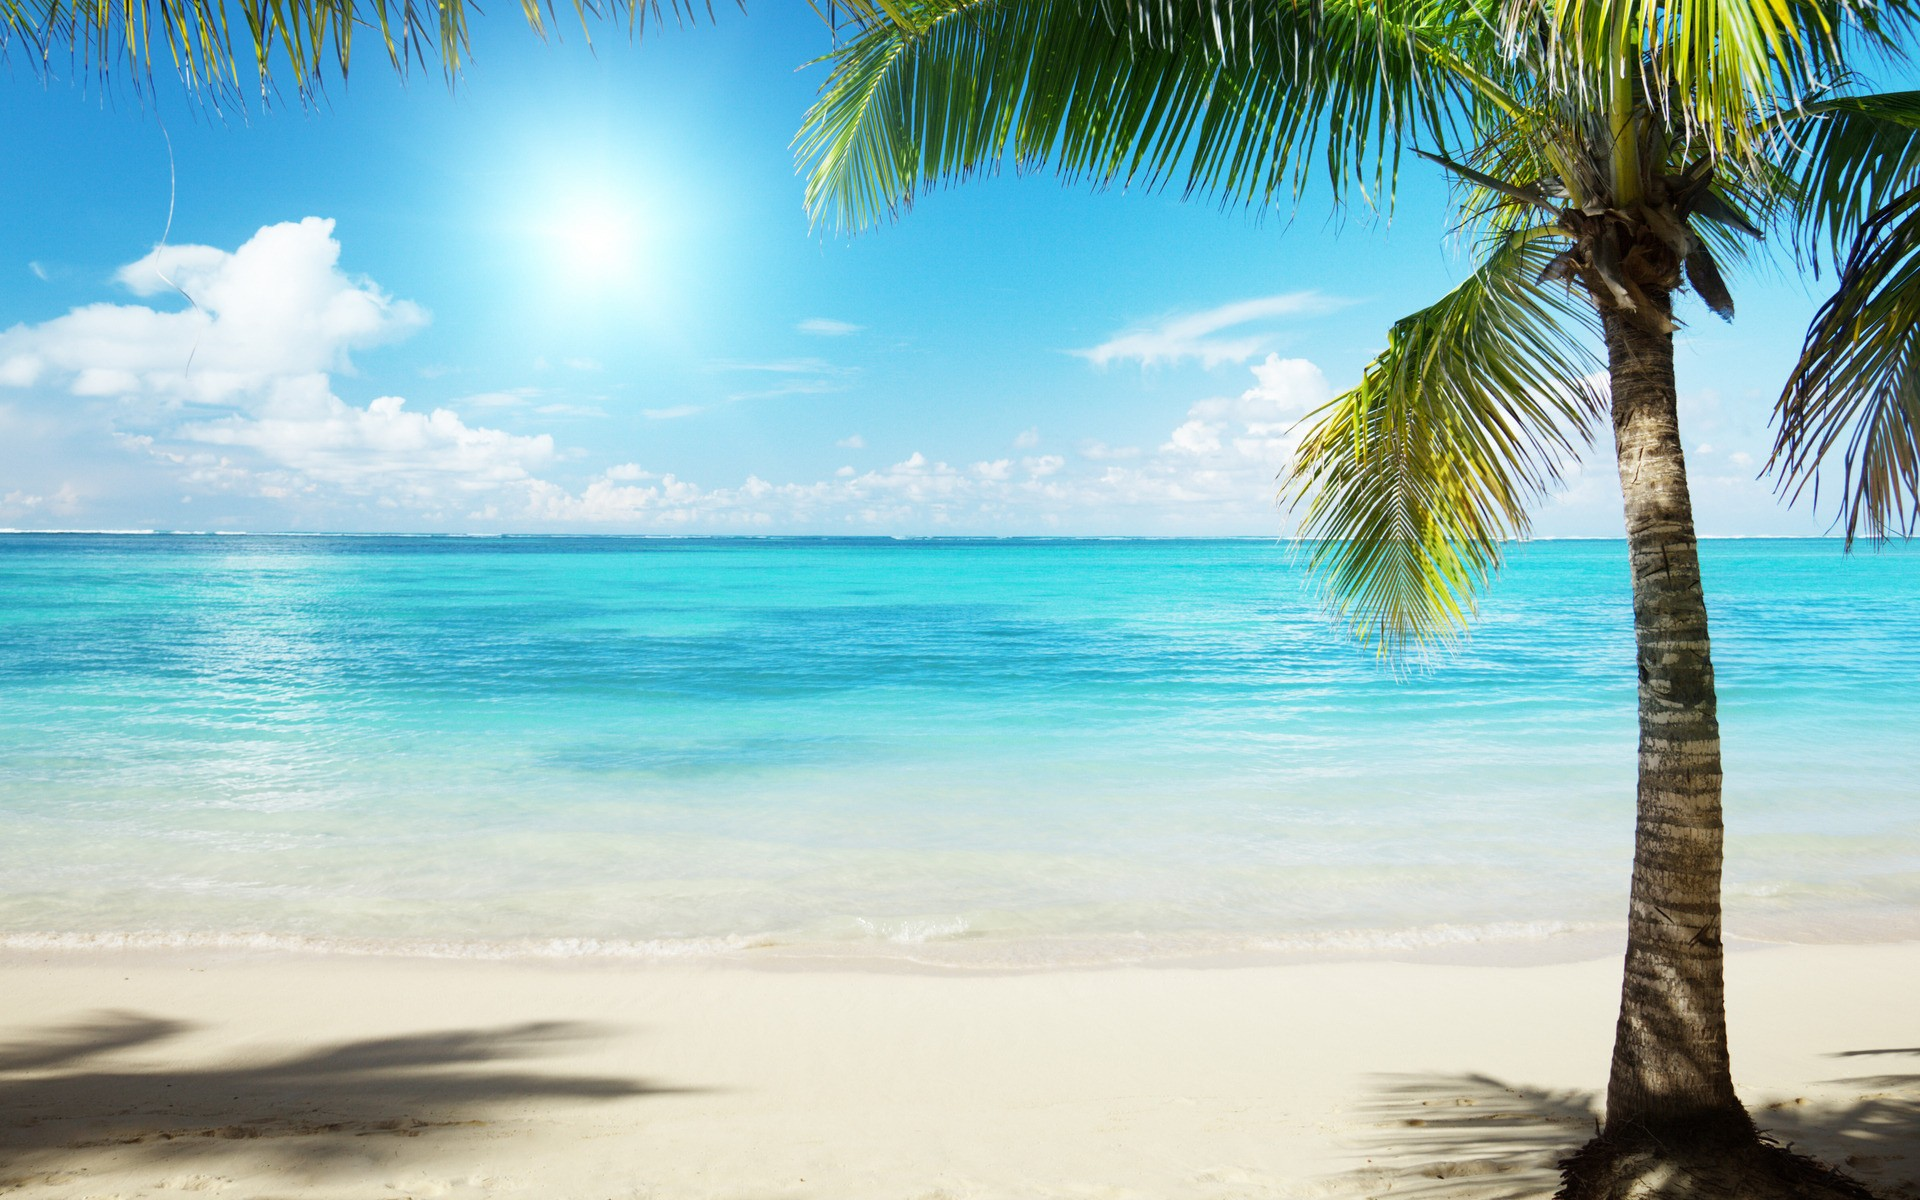 The Beach Wallpapers